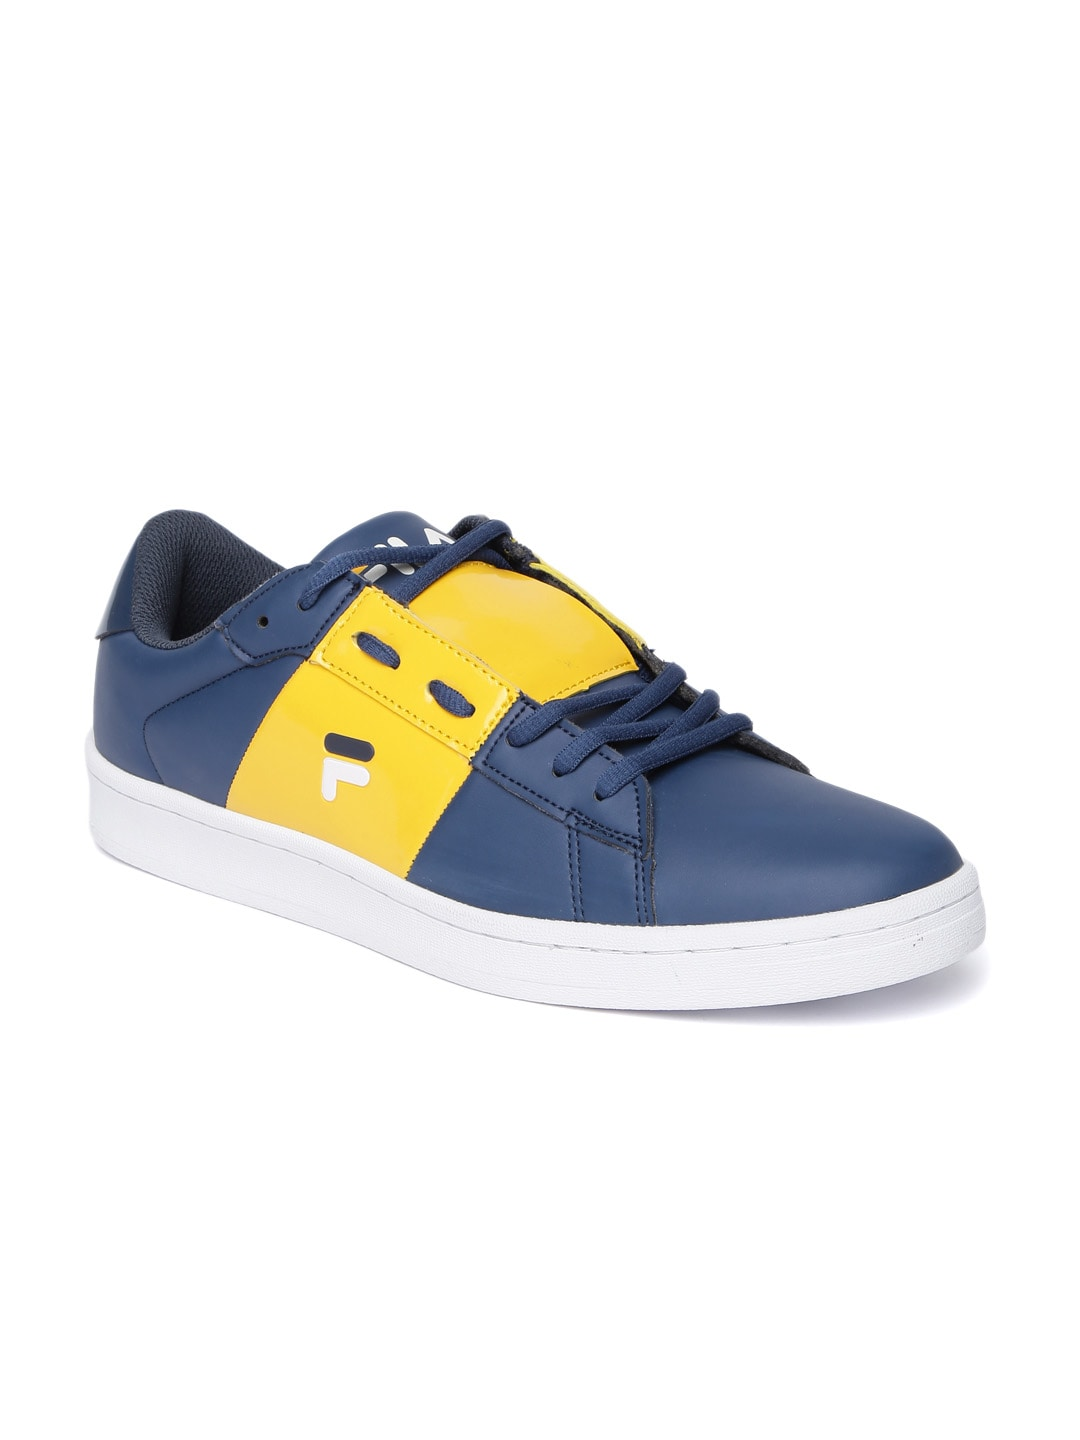 new products e8c02 e2a6e Fila Shoes - Buy Original Fila Shoes Online in India  Myntra